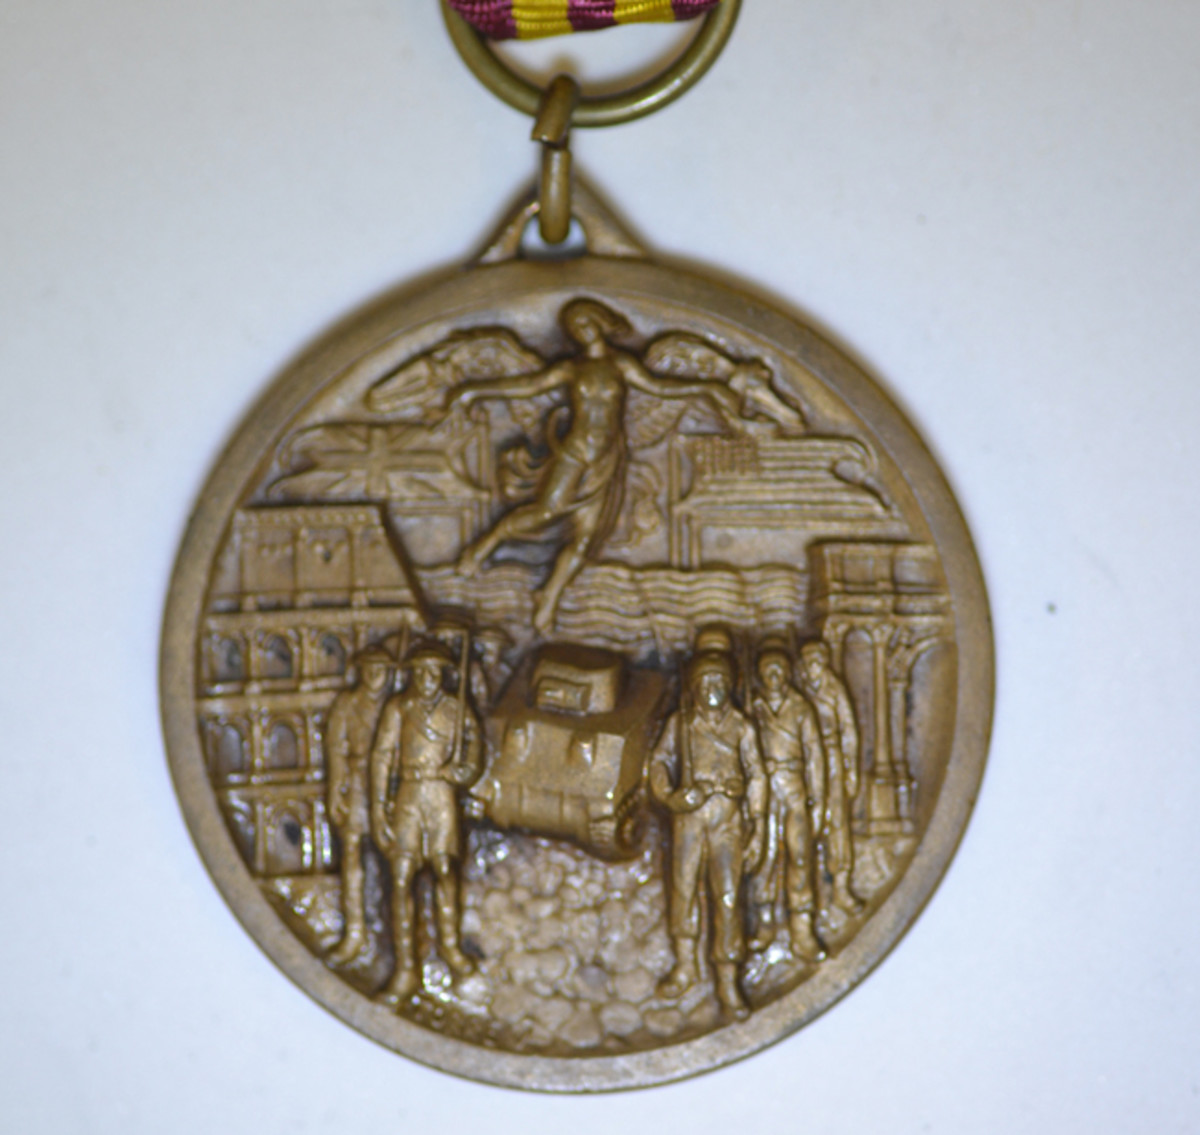 The Type 4 Liberation of Rome Medal show a high relief design of Allies and Tanks entering Rome under U.S. and British Flags with Lady of Victory. It also displays a maker's mark.